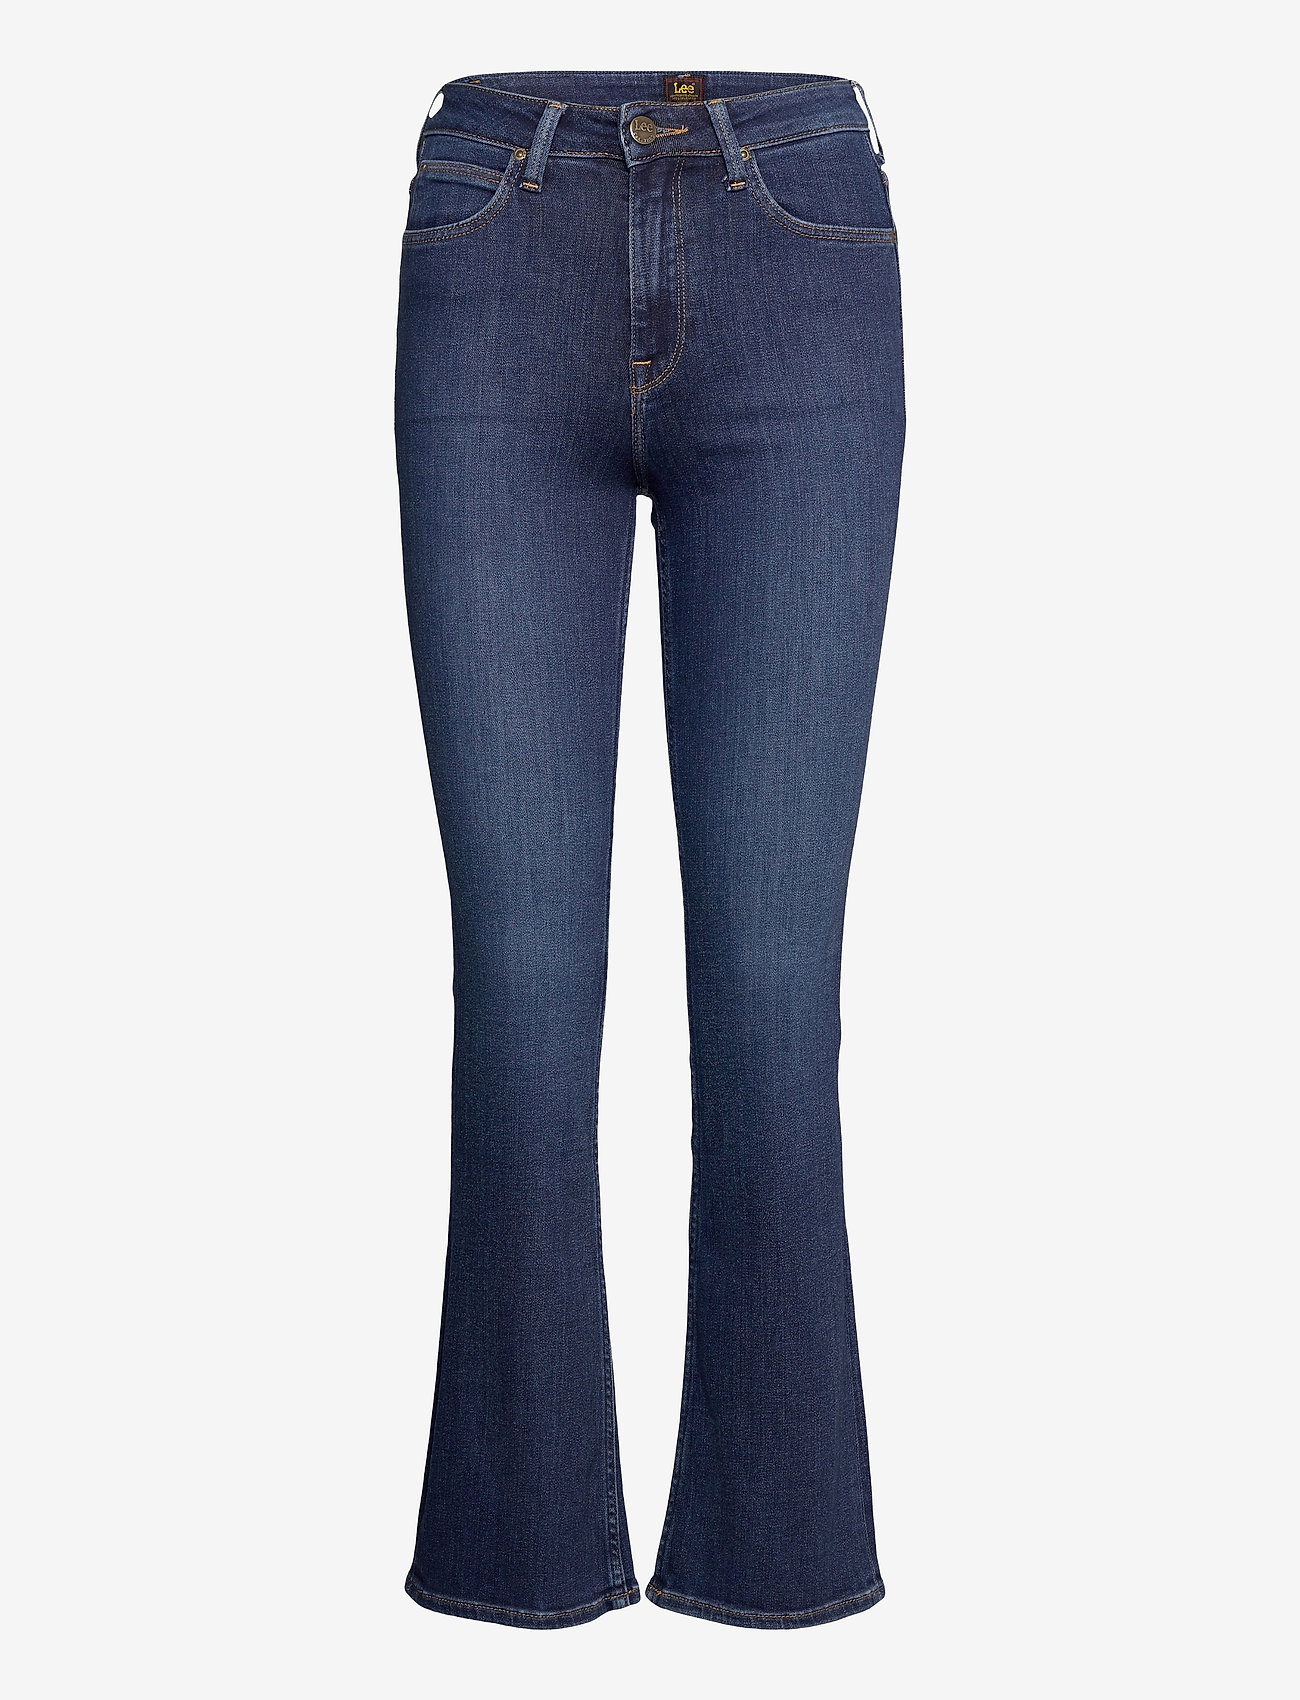 Lee Jeans - BREESE BOOT - uitlopende jeans - dark bristol - 0